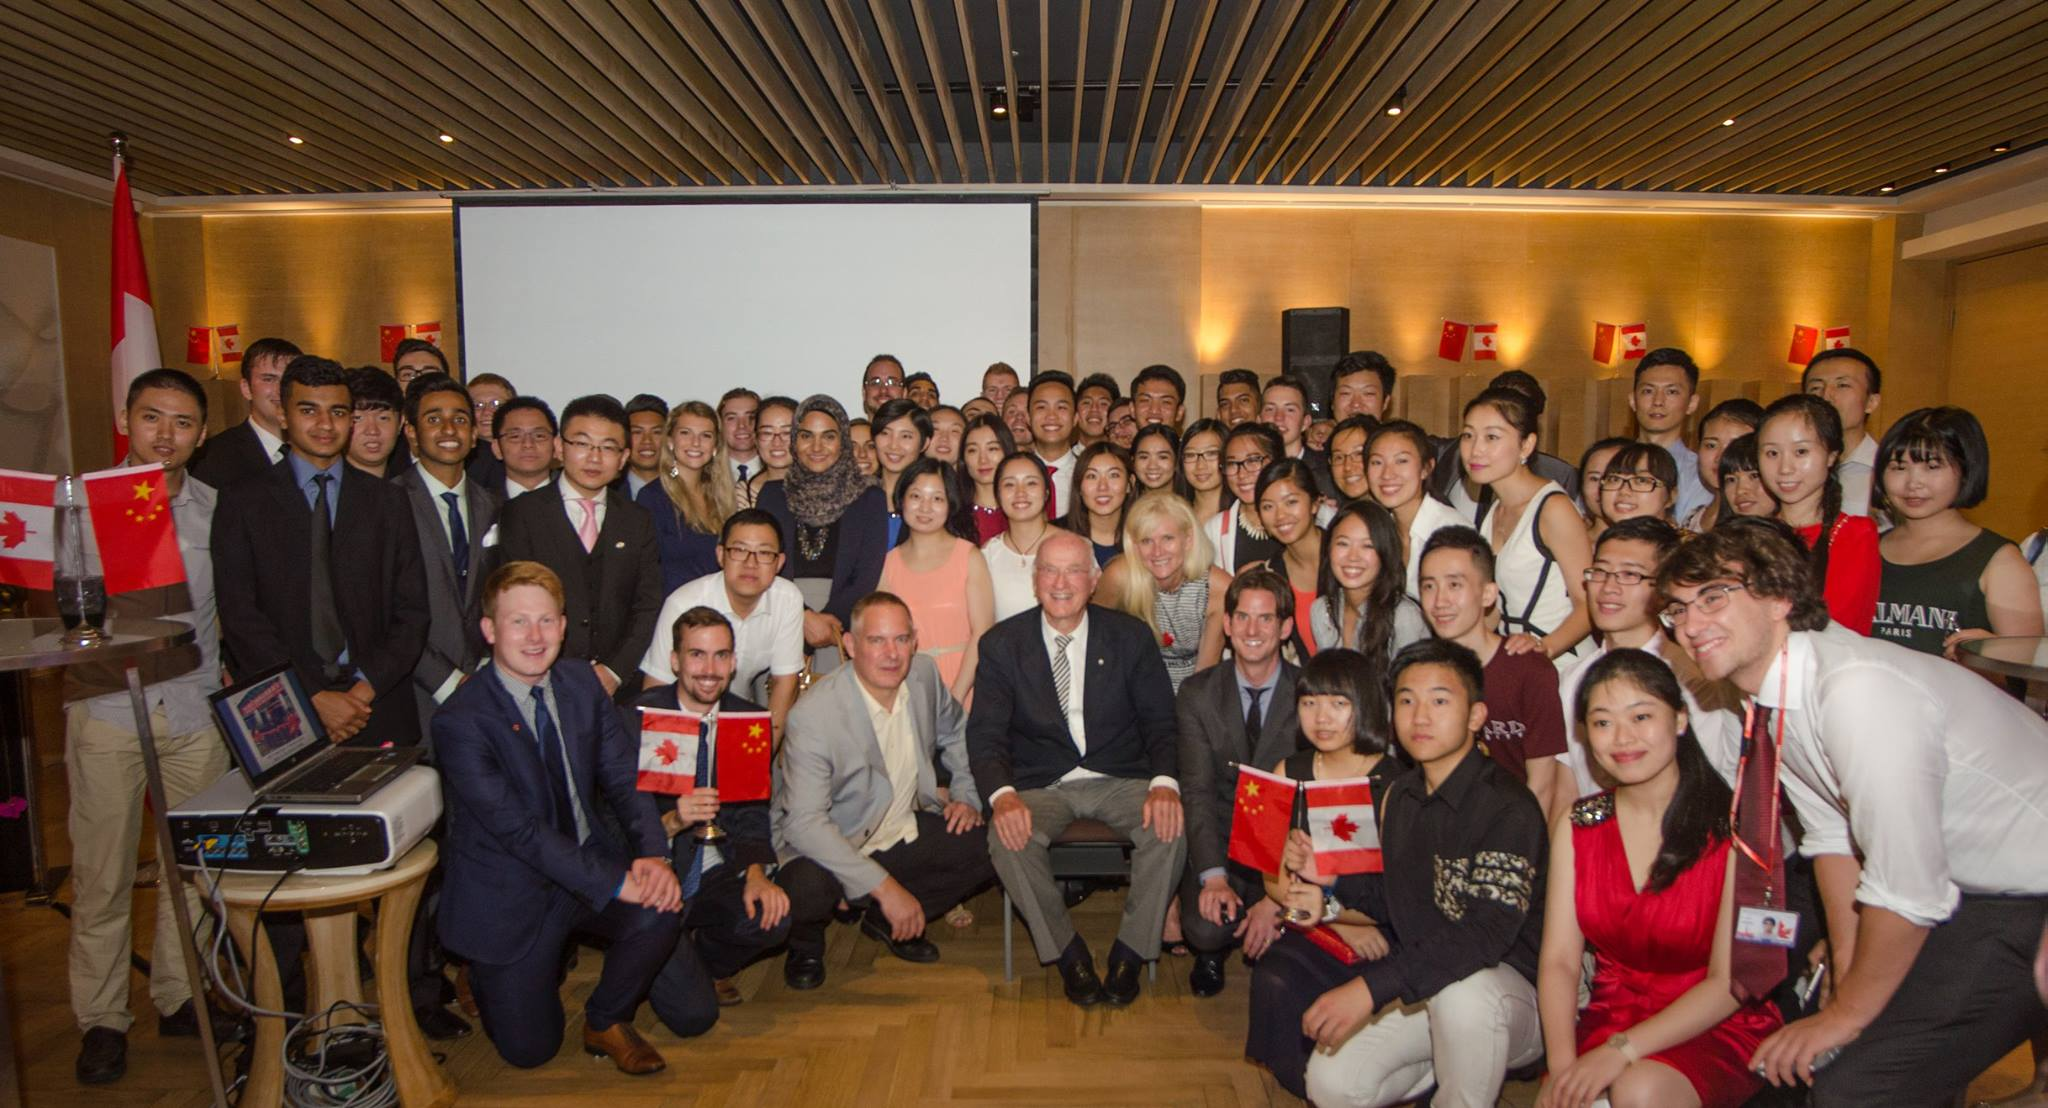 Junior Team canada 2015 with CONsul general of canada to Chongqing, Philippe rheault at OUR RECEPTION IN CHONGQING ON JULY 30, 2015